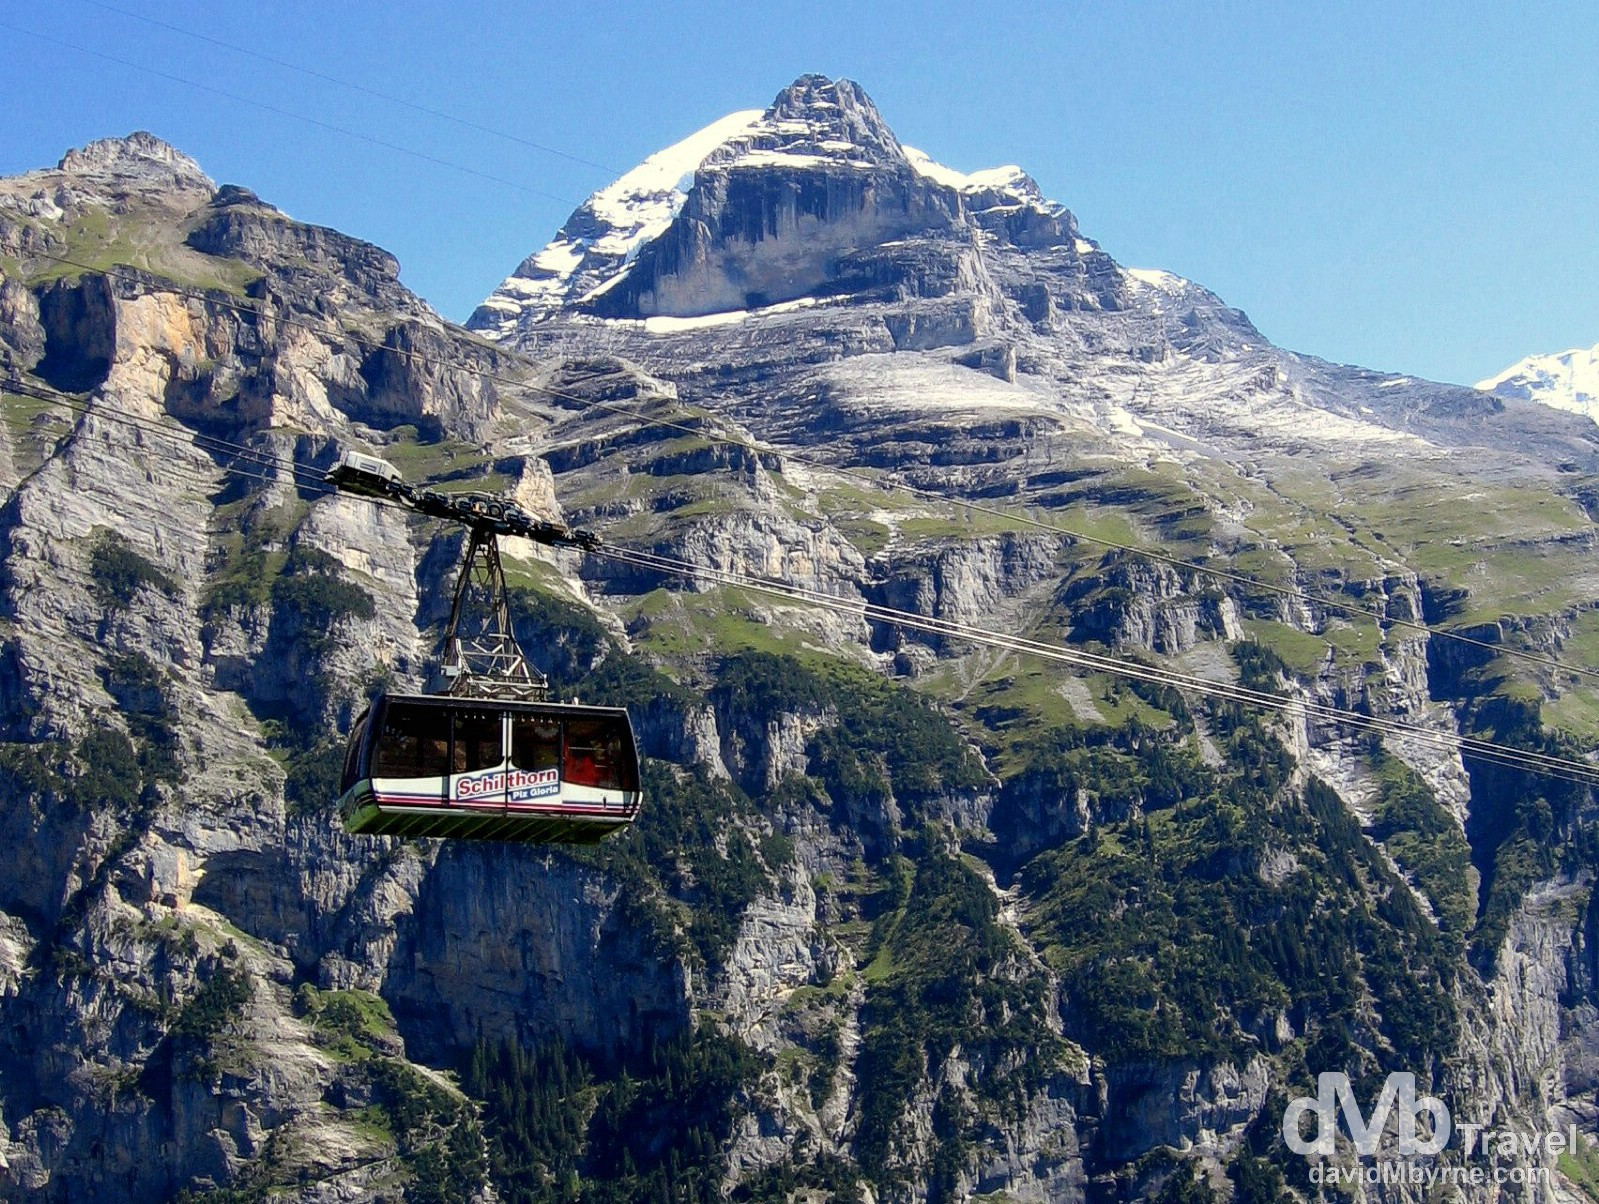 Cross Country Quotes >> Jungfrau, Switzerland - Worldwide Destination Photography & Insights